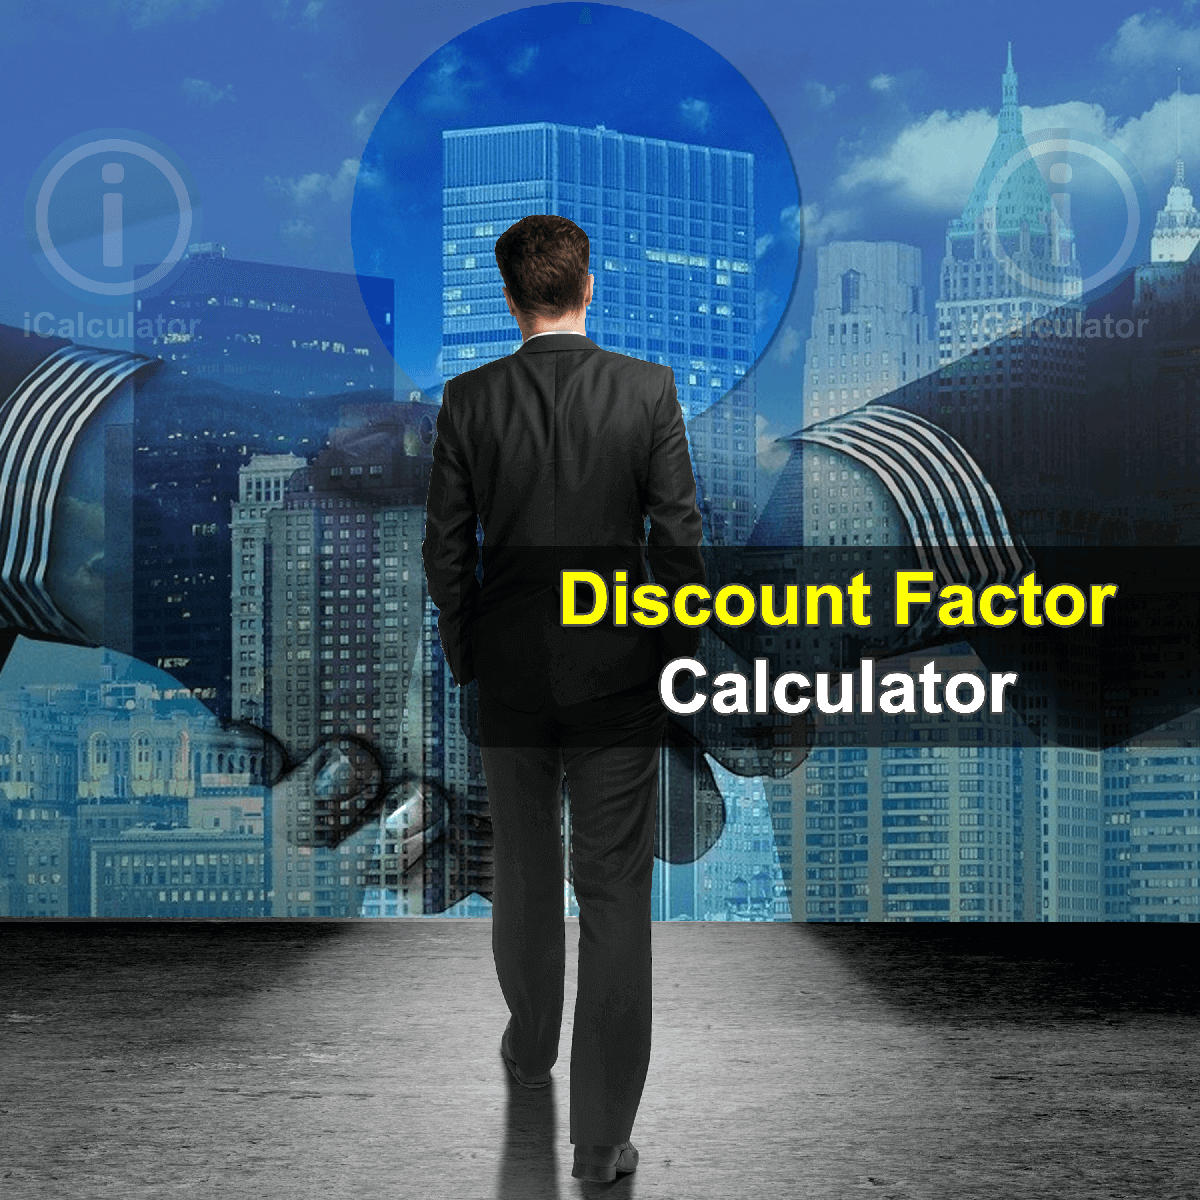 Discount Factor Calculator. This image provides details of how to calculate Discount Factor using a calculator and notepad. By using theDiscount Factor formula, the Discount Factor Calculator provides a true calculation of the value of money changes according to the time difference between present and future and it is created by discounting the future value back to the present value